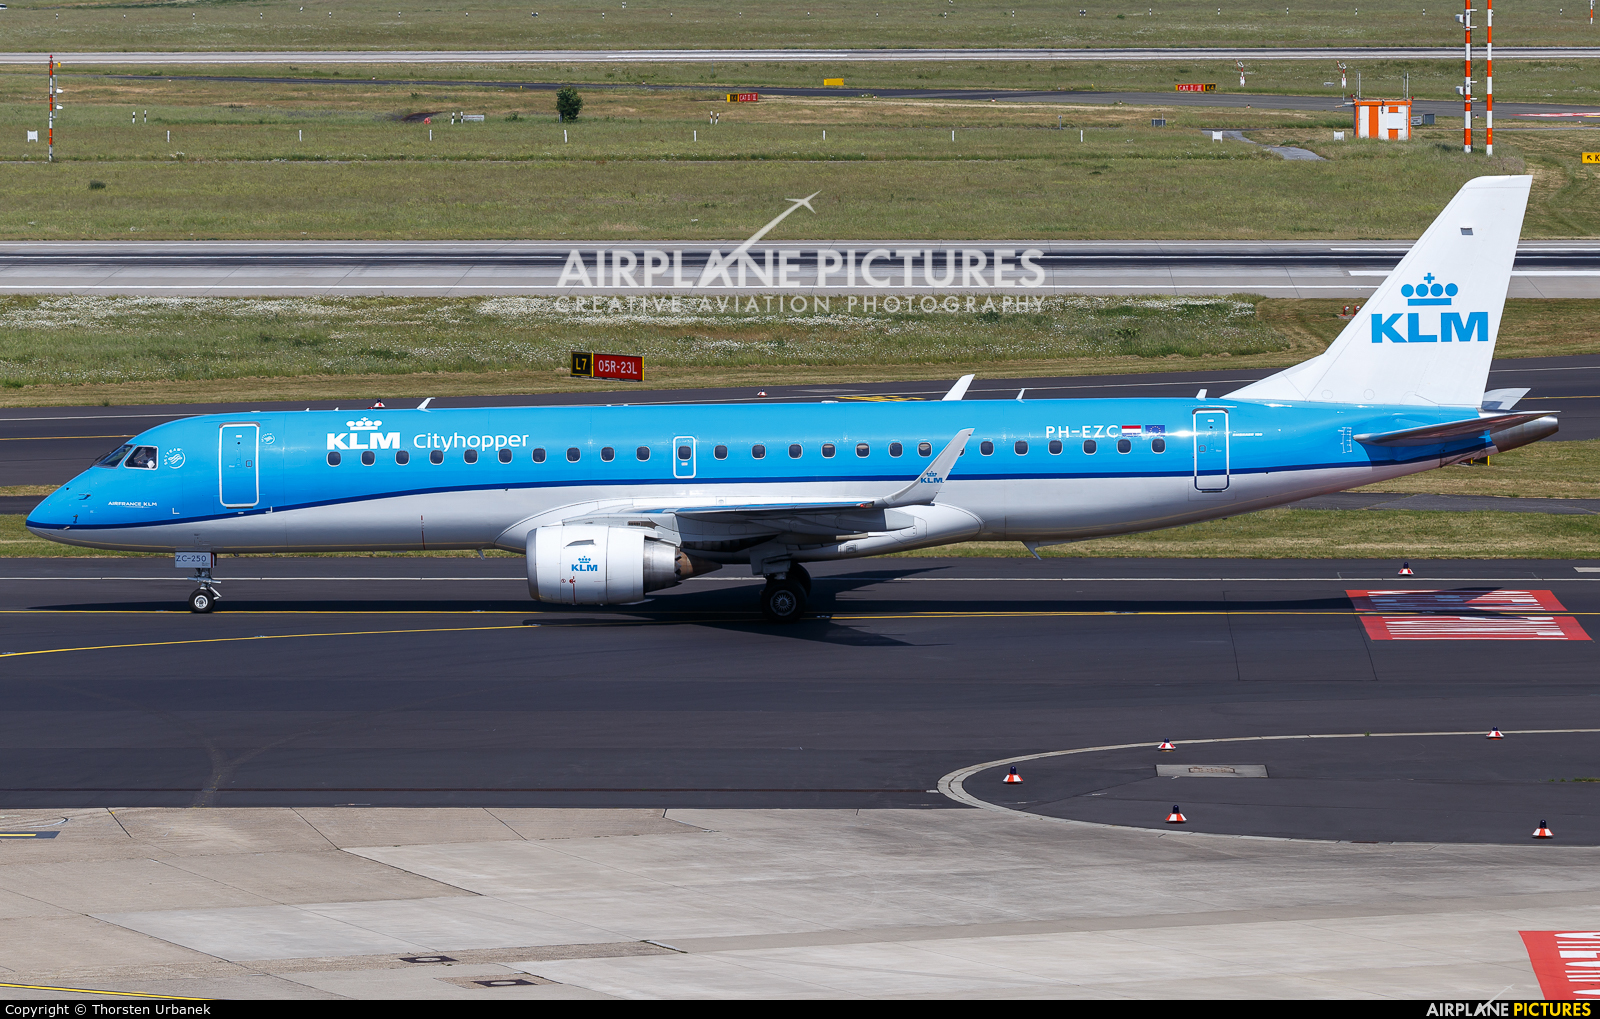 KLM Cityhopper PH-EZC aircraft at Düsseldorf